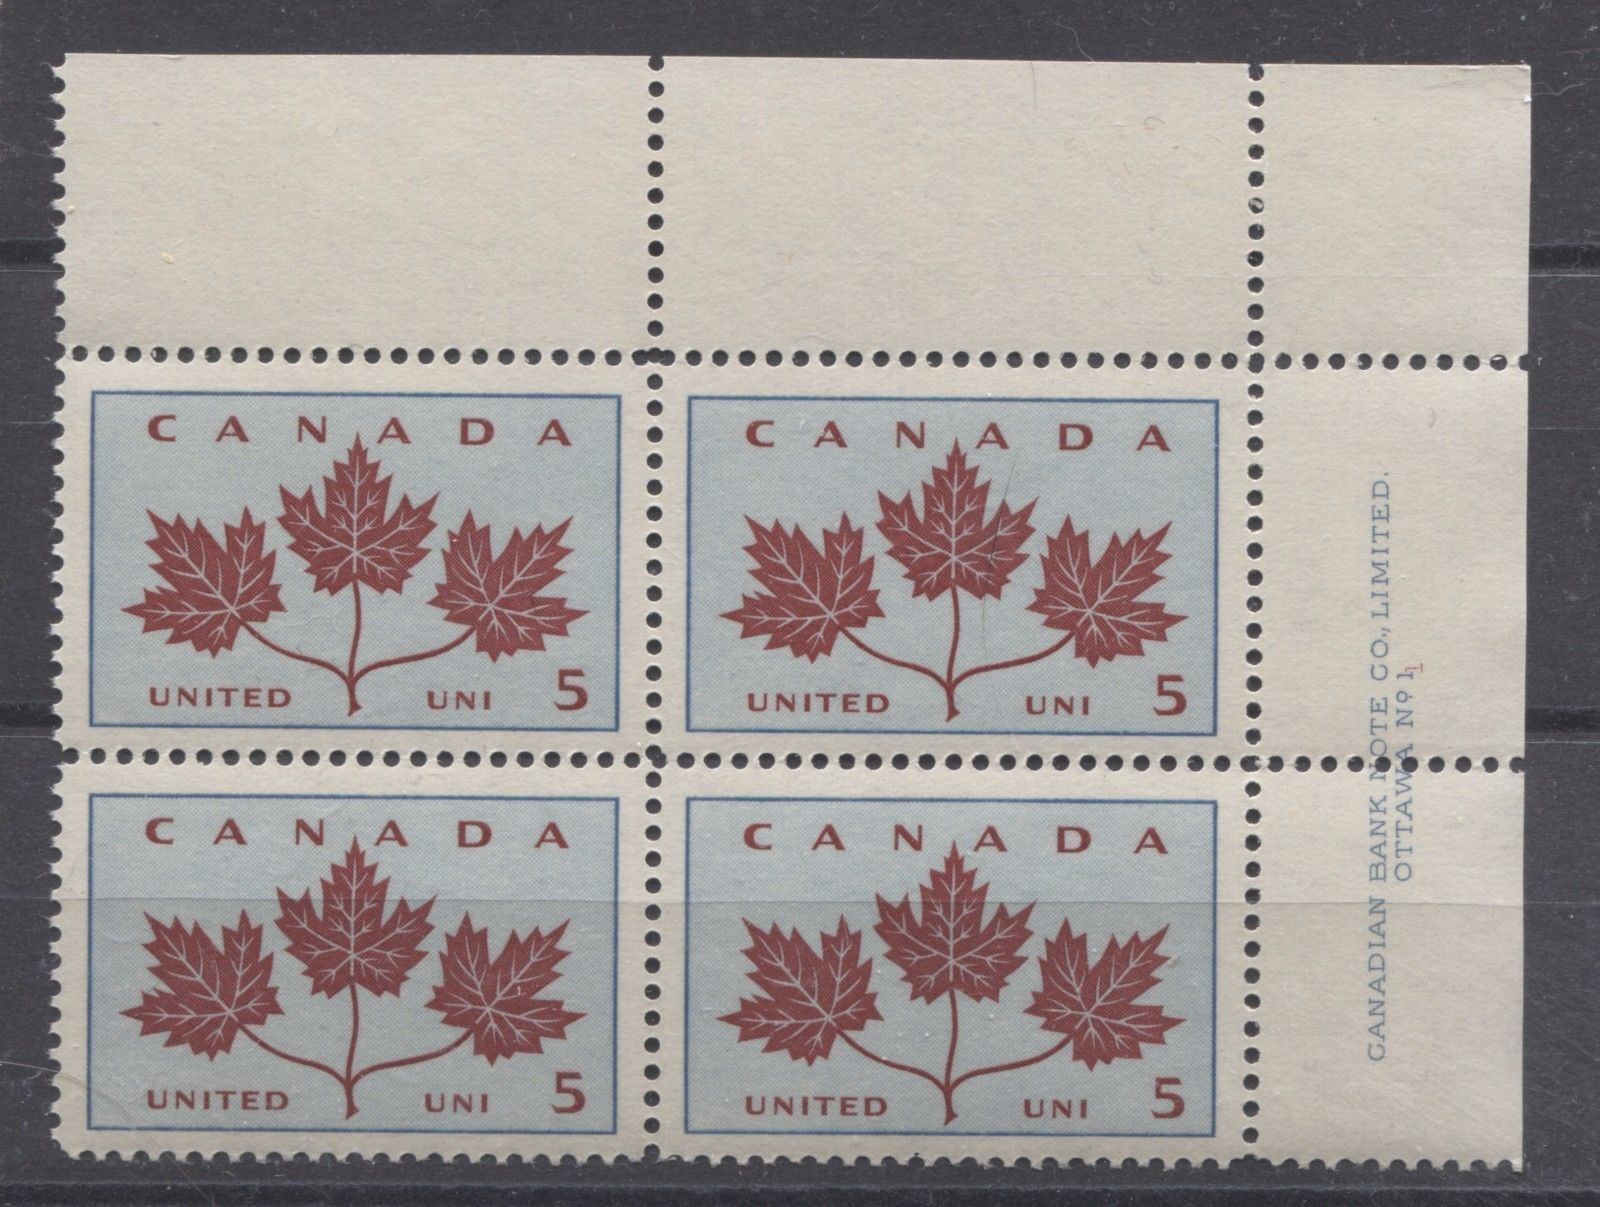 Canada #417 (SG#542) 5c Light Blue & Dark Carmine 1964 Maple Leaves Plate 1 UR VF 75/80 NH Brixton Chrome